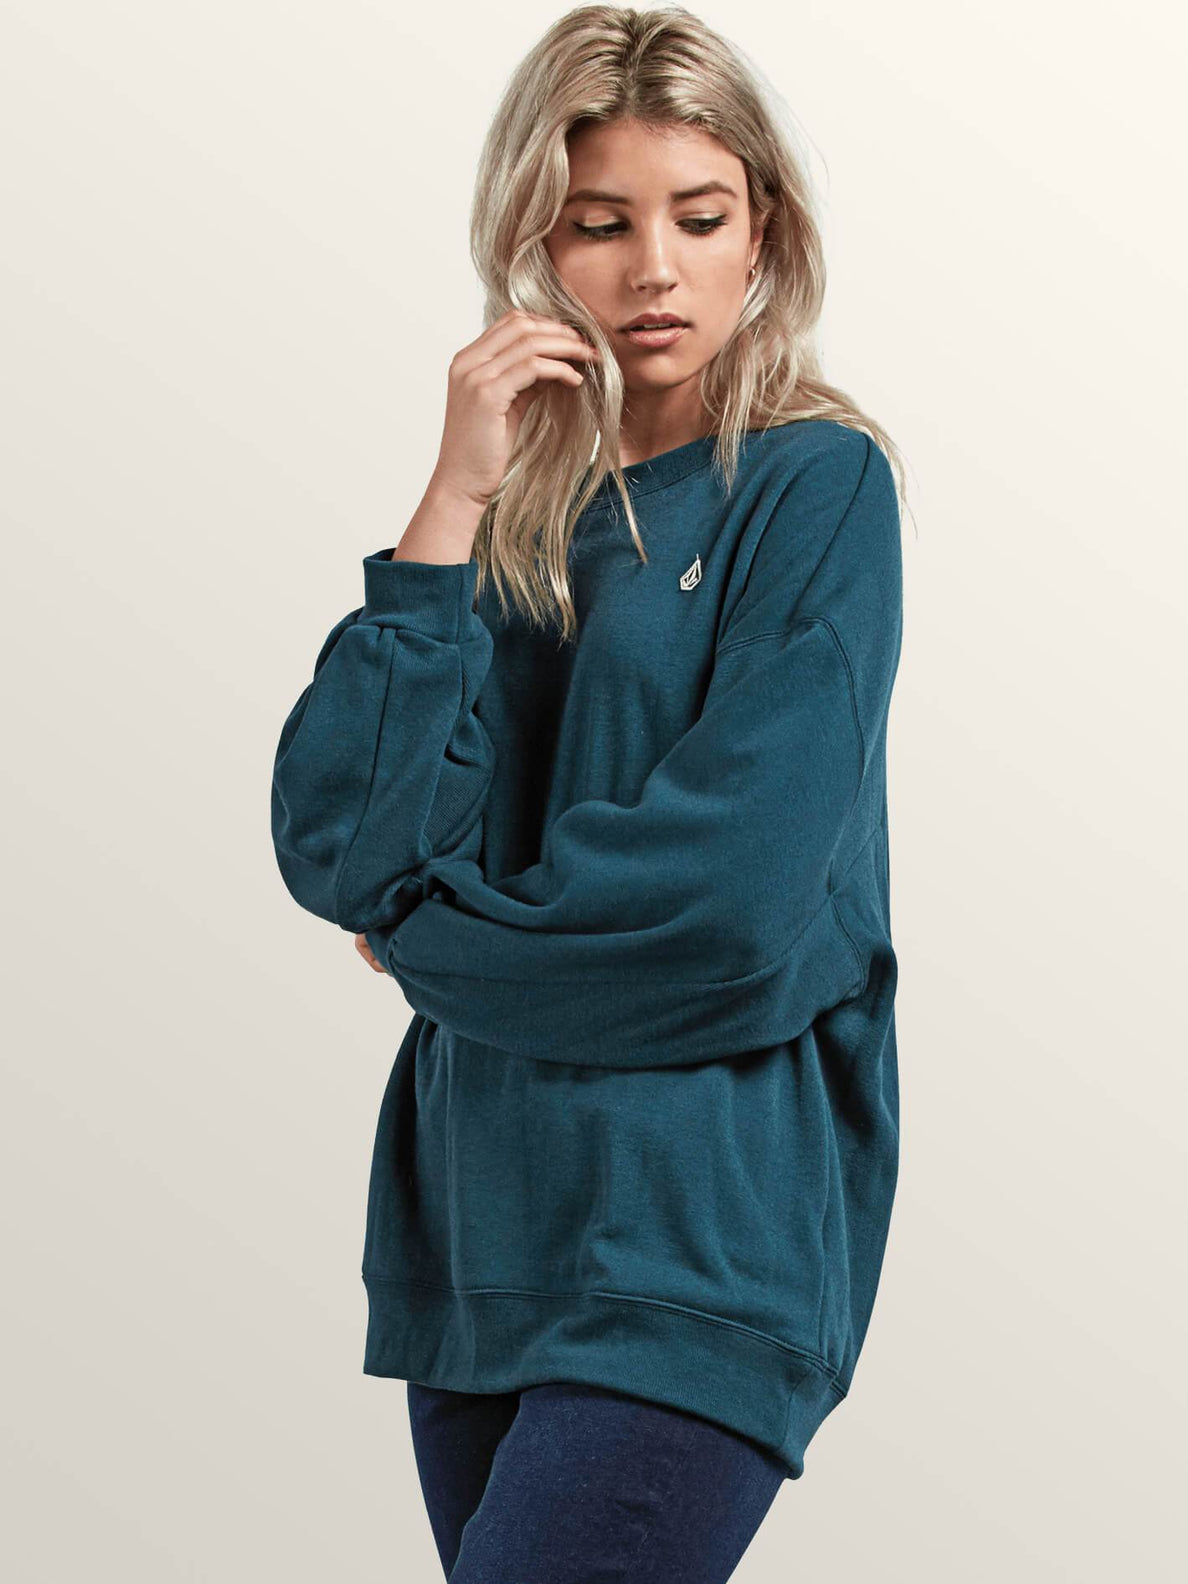 Darting Traffic Crew Sweatshirt In Evergreen, Alternate View